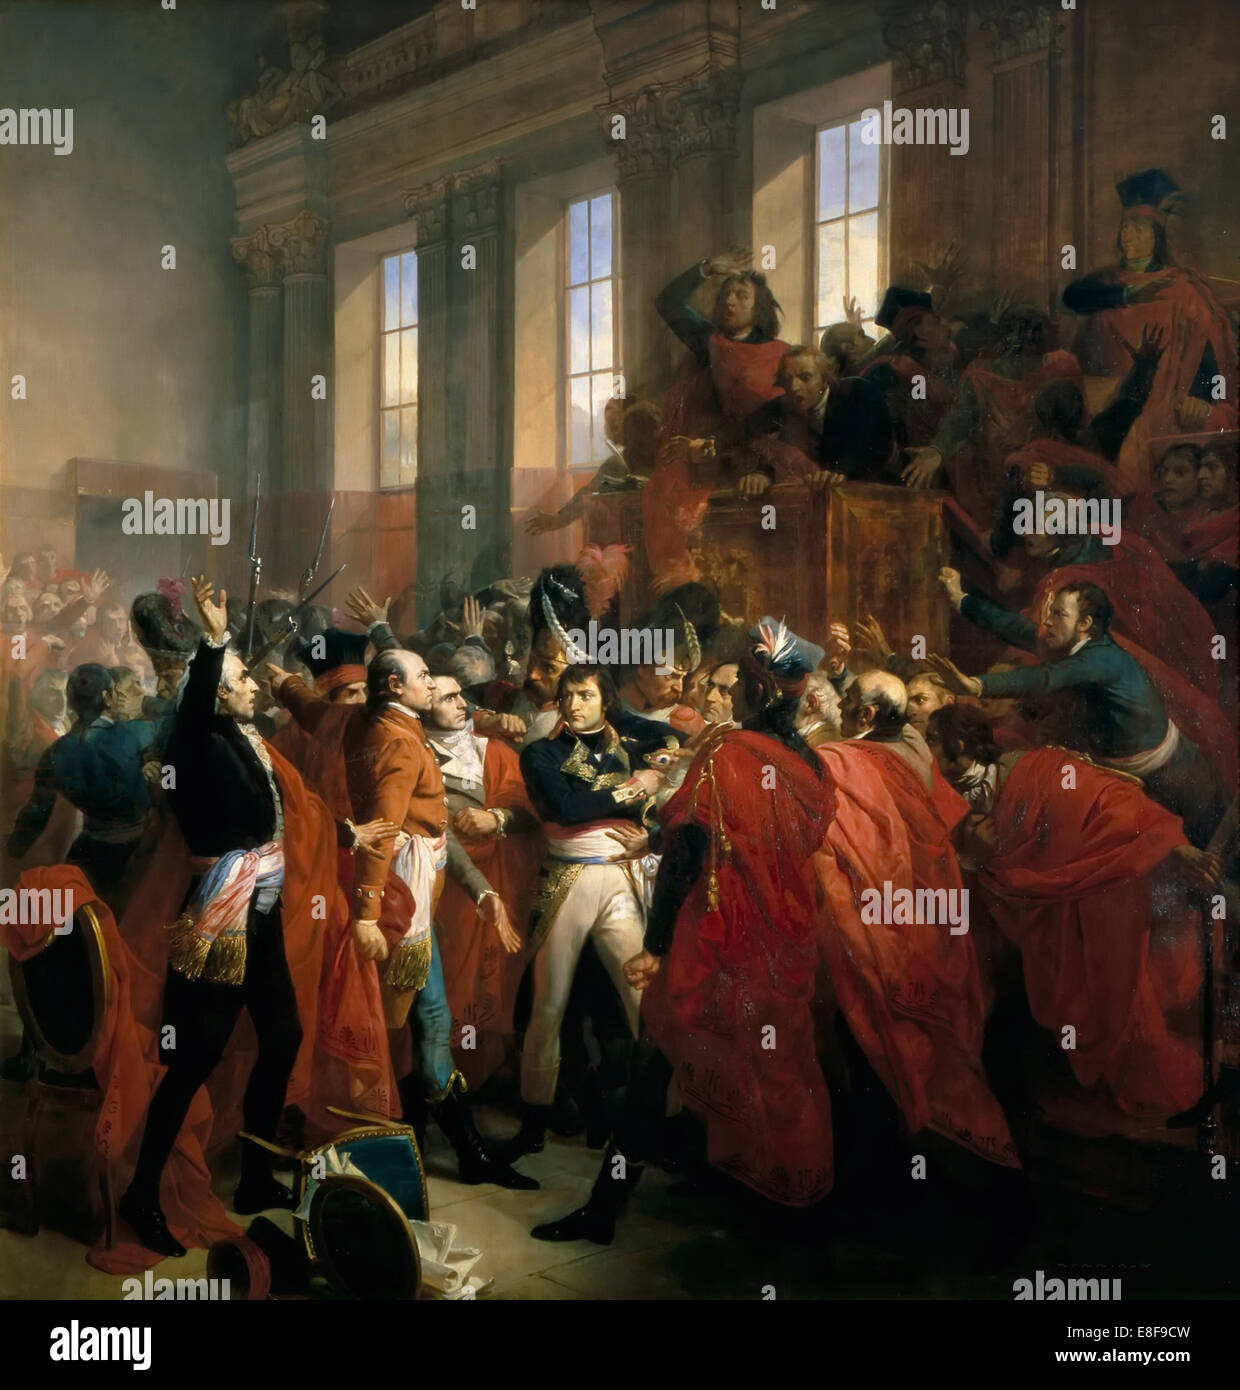 General Bonaparte surrounded by members of the Council of Five Hundred in Saint-Cloud, November 10,  Artist: Bouchot, - Stock Image